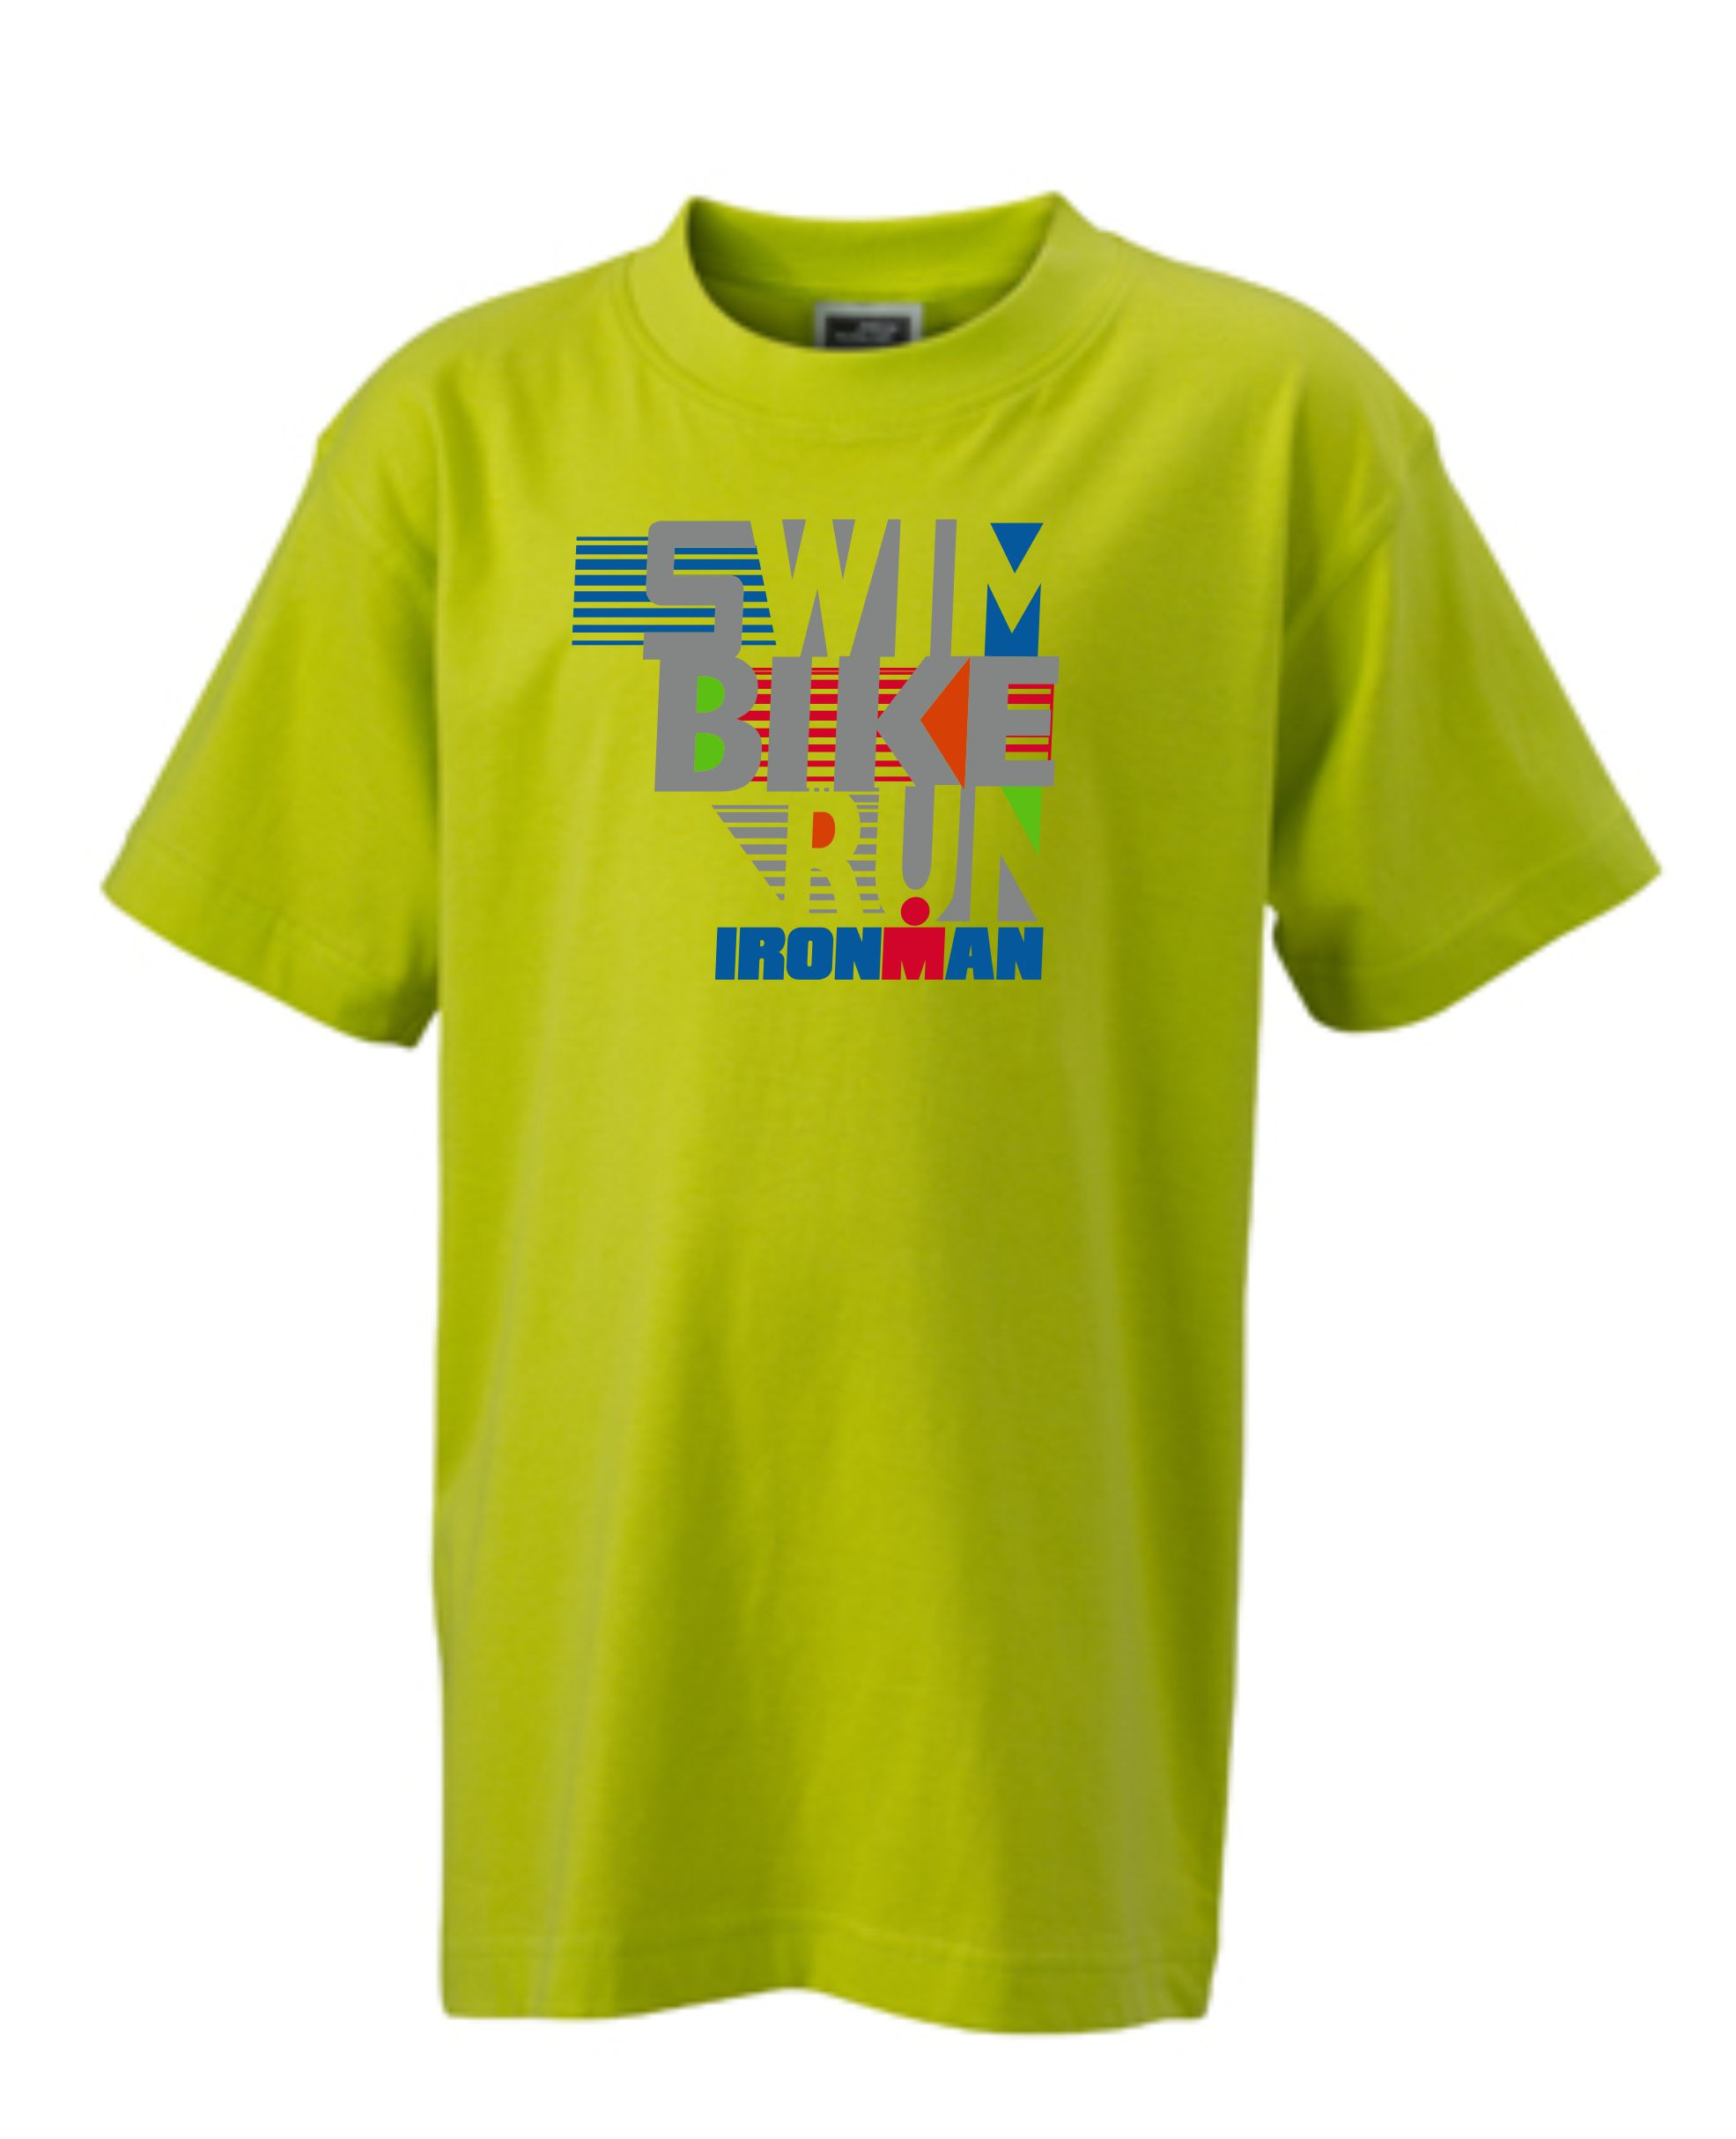 IRONMAN SWIM BIKE RUN Kids' Tee - yellow